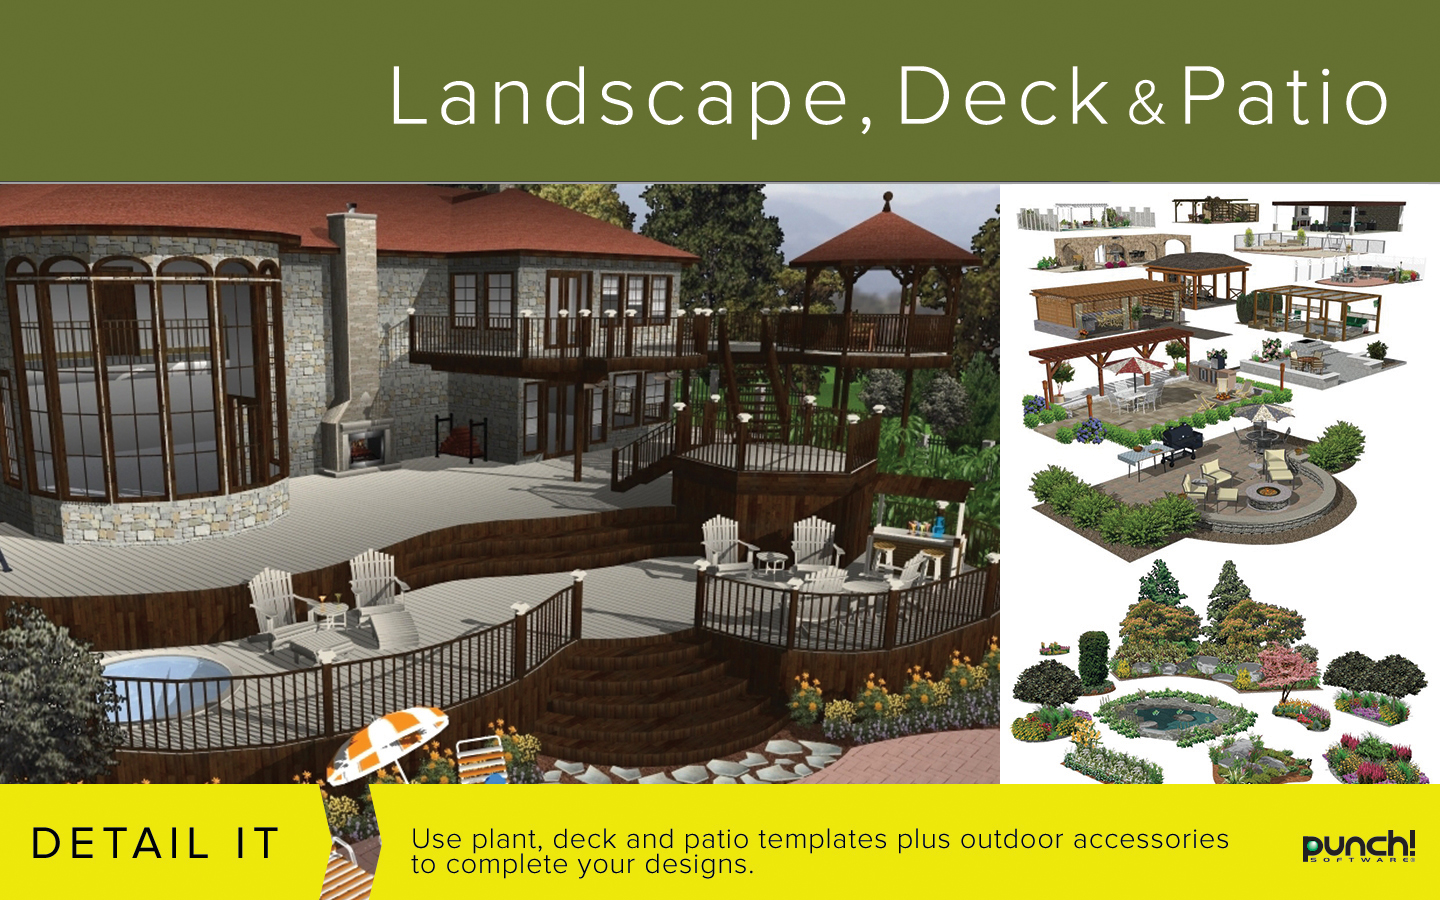 100 punch home design essentials for mac review for Punch home landscape design essentials v19 review